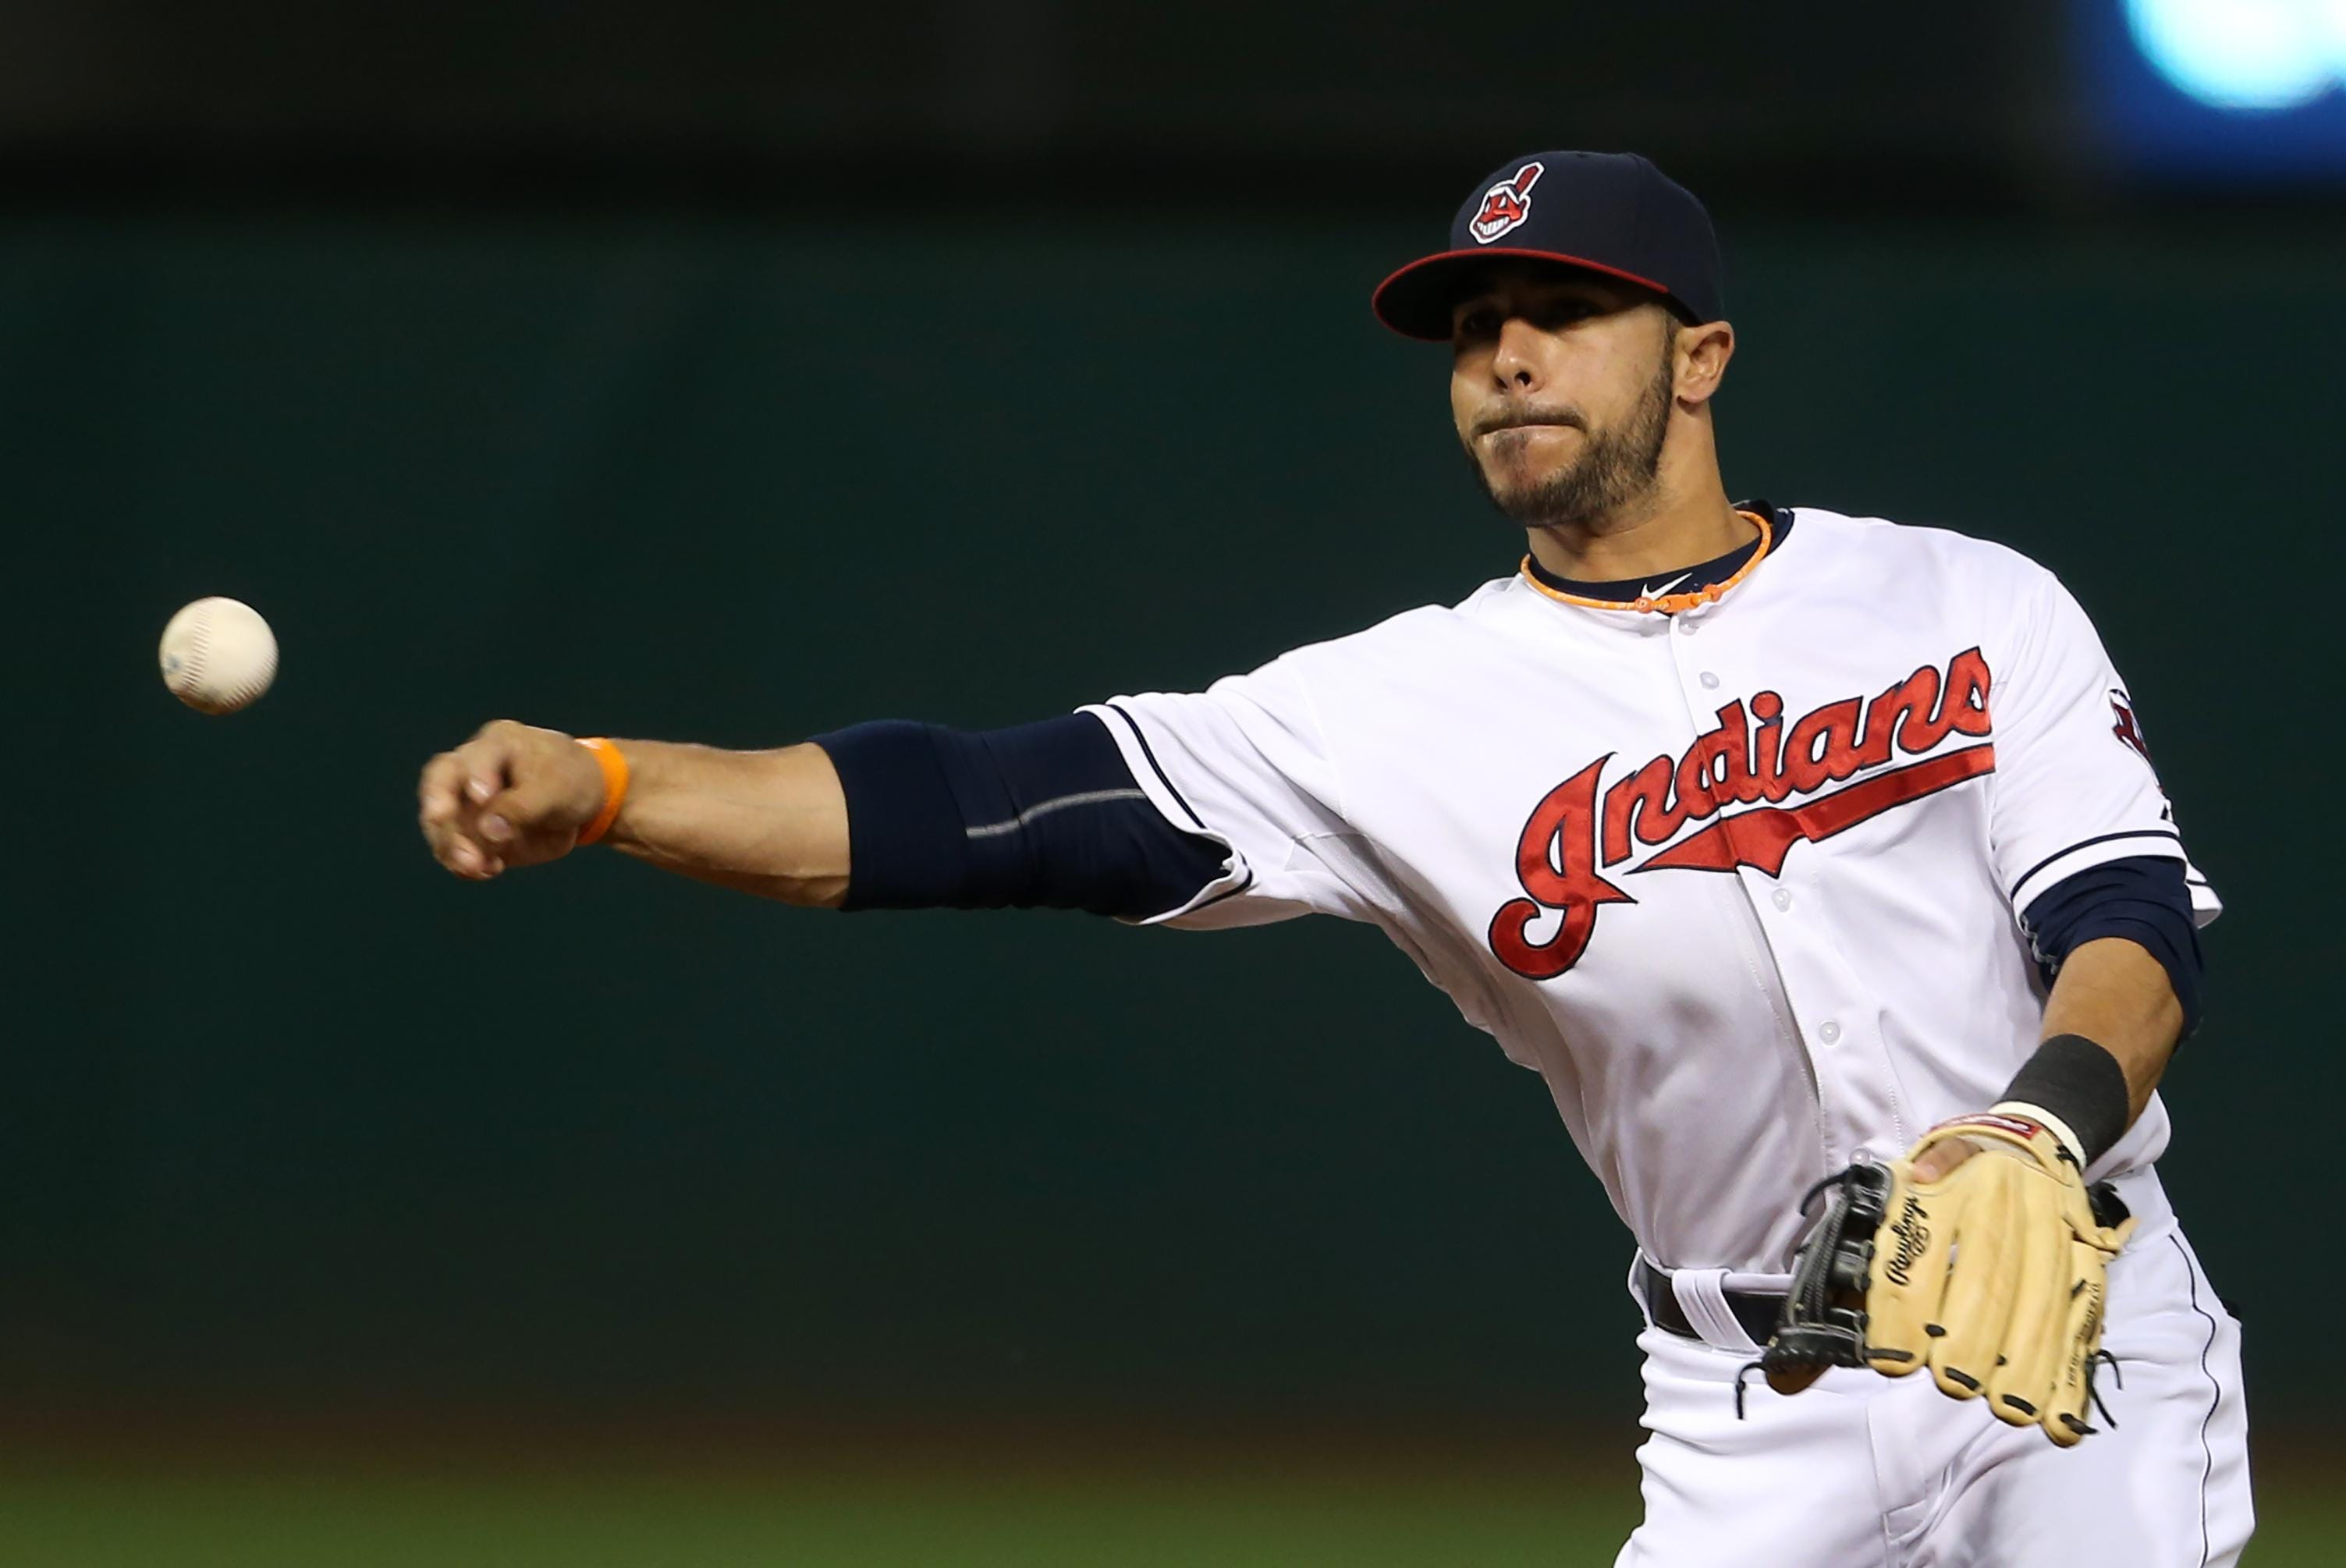 Mike Aviles 2015 Pictures, Photos & Images - Zimbio